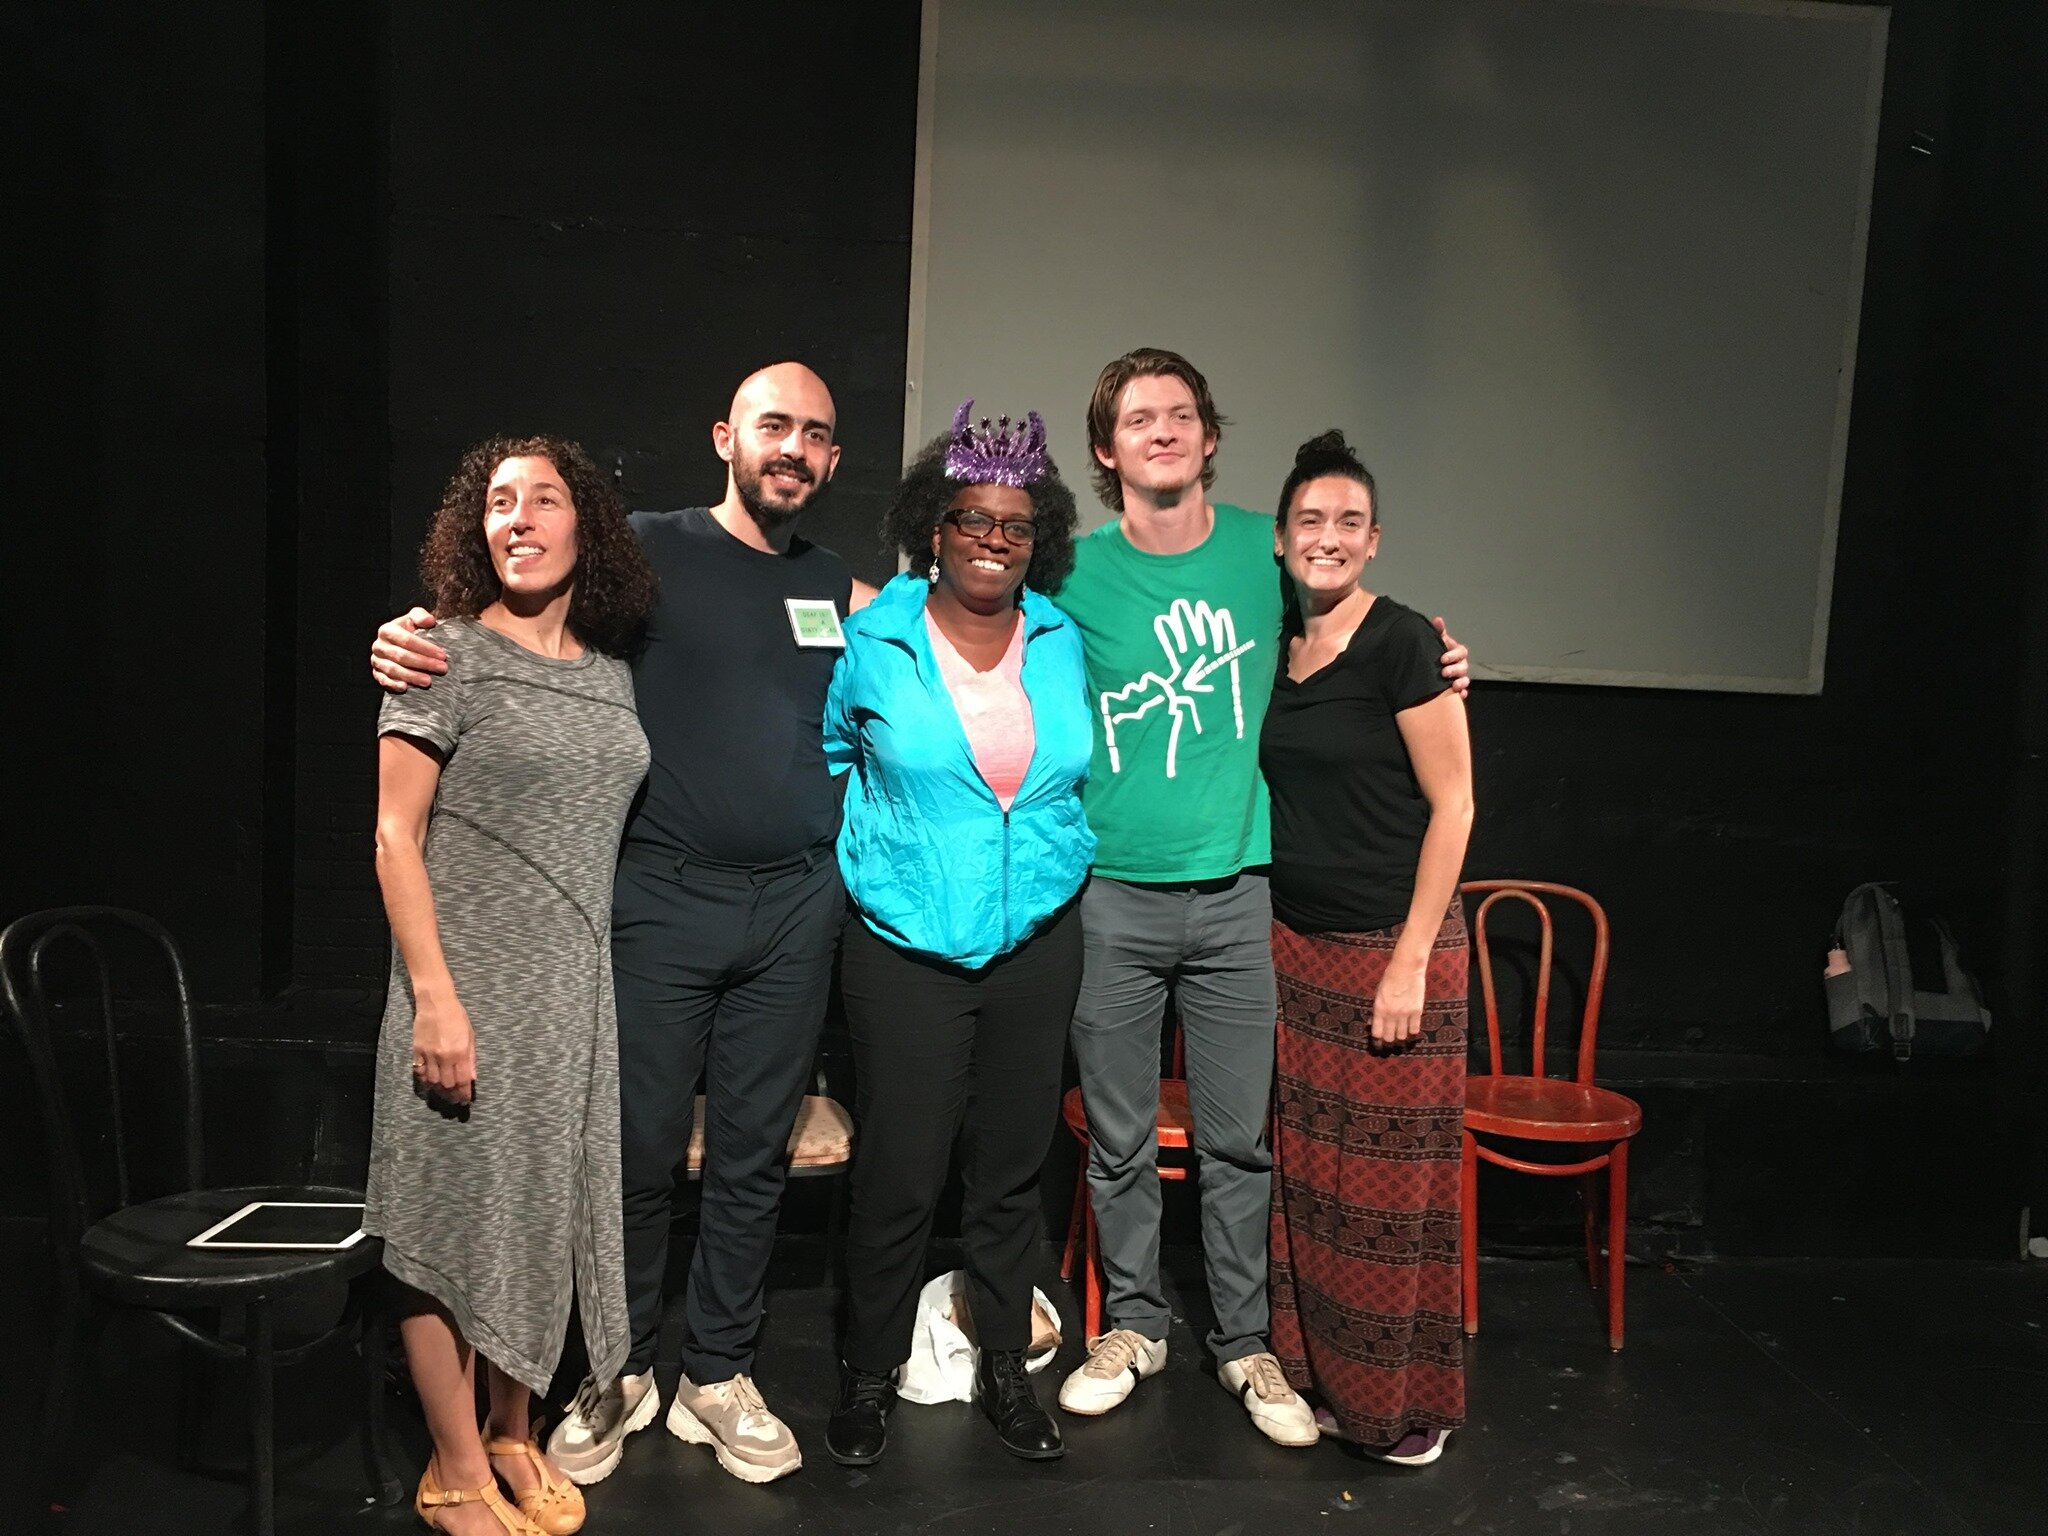 Andria Alefhi, show creator and voice interpreter; Gregor Lopes, interviewer and social media director; Miss Marsellette, dominatrix; Seth Gore, ASL consultant for films and background actor; Candi Harbison, Deaf education.